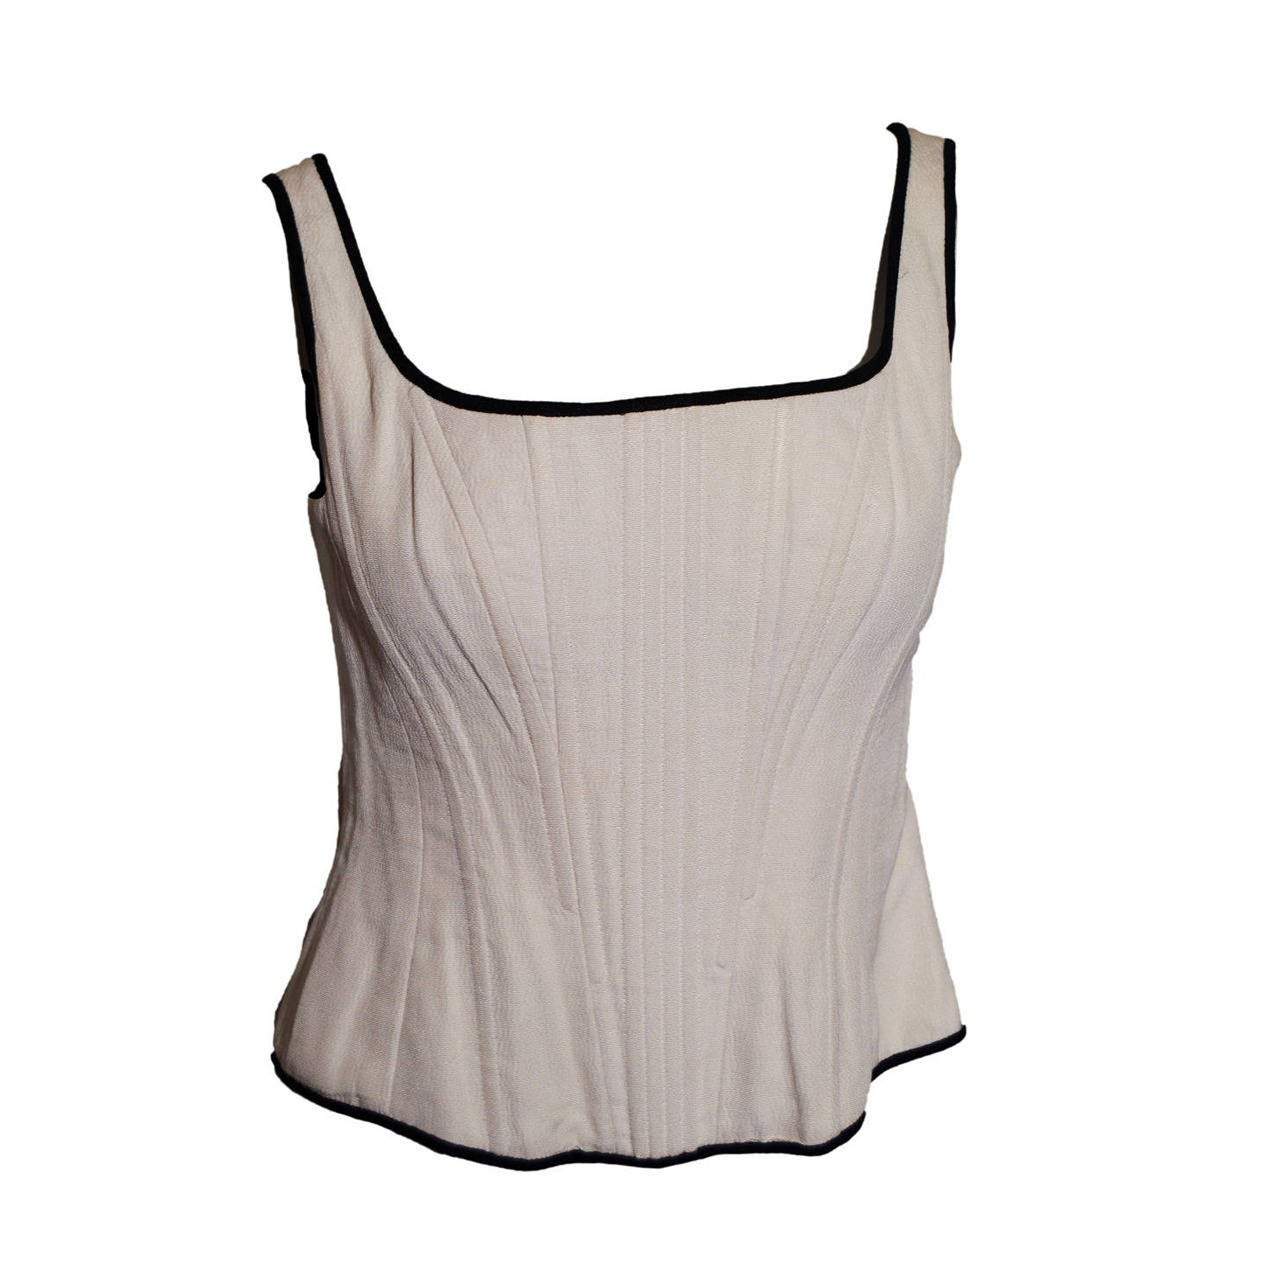 Chanel Corset Top in Cream Crepe